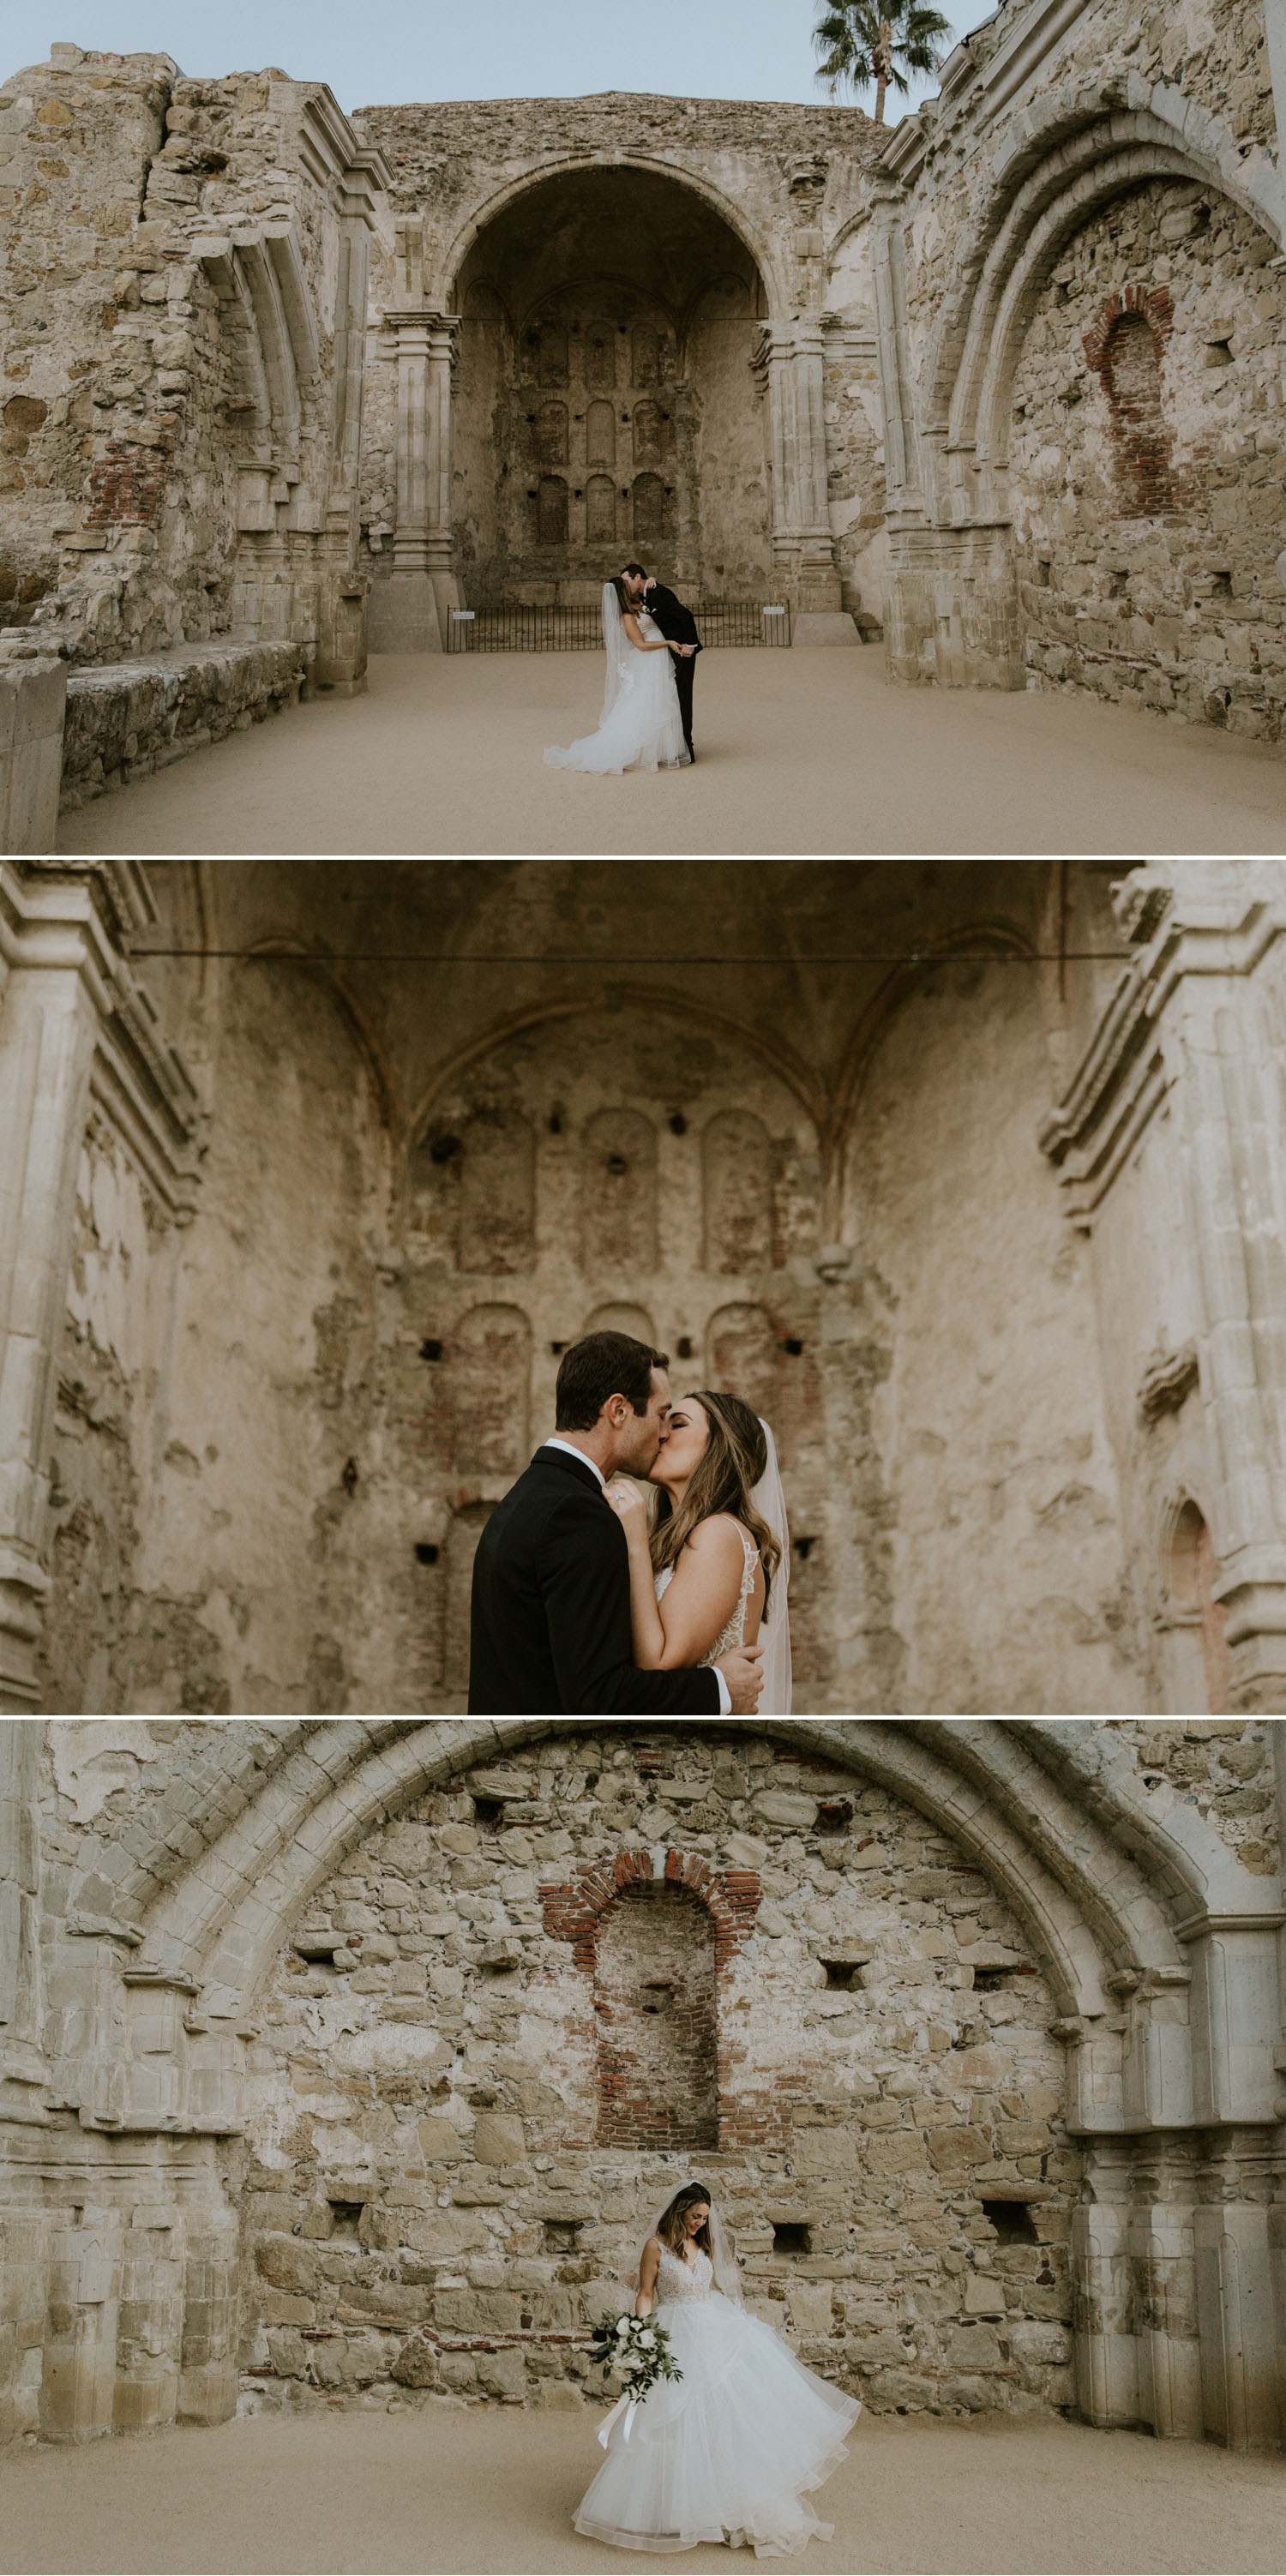 Romantic holiday wedding at franciscan gardens paige nelson for Franciscan gardens san juan capistrano